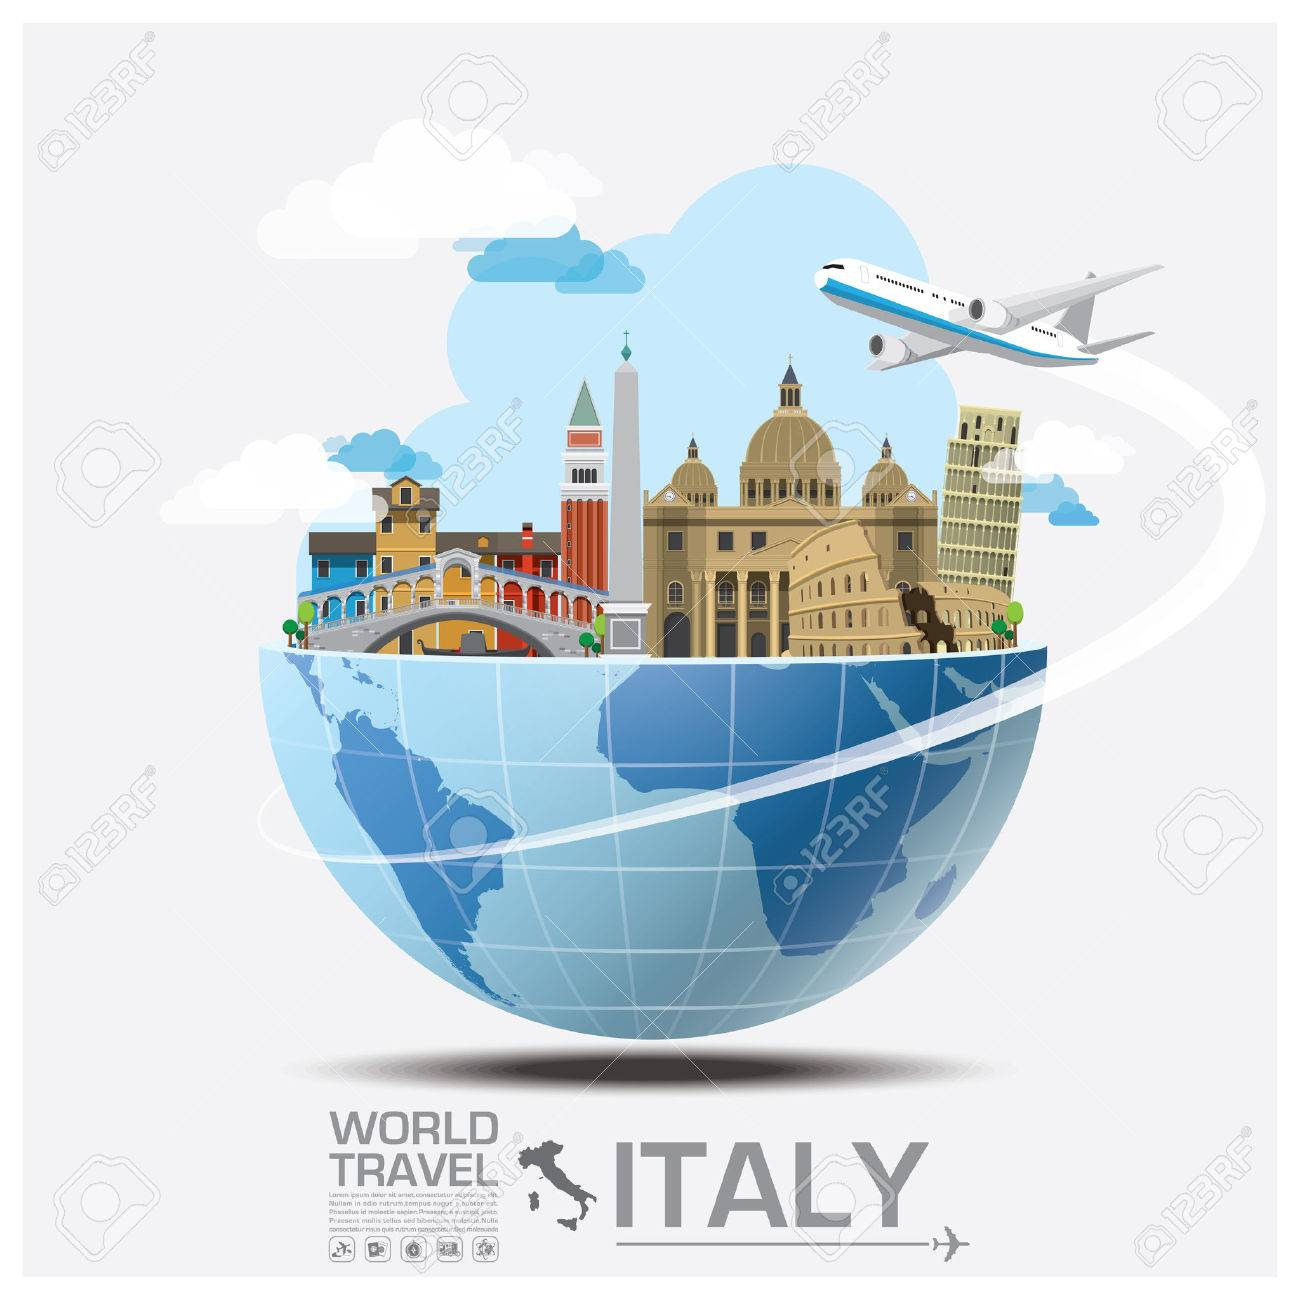 Italy Landmark Global Travel And Journey Infographic Vector Design Template Stock Vector - 44969540